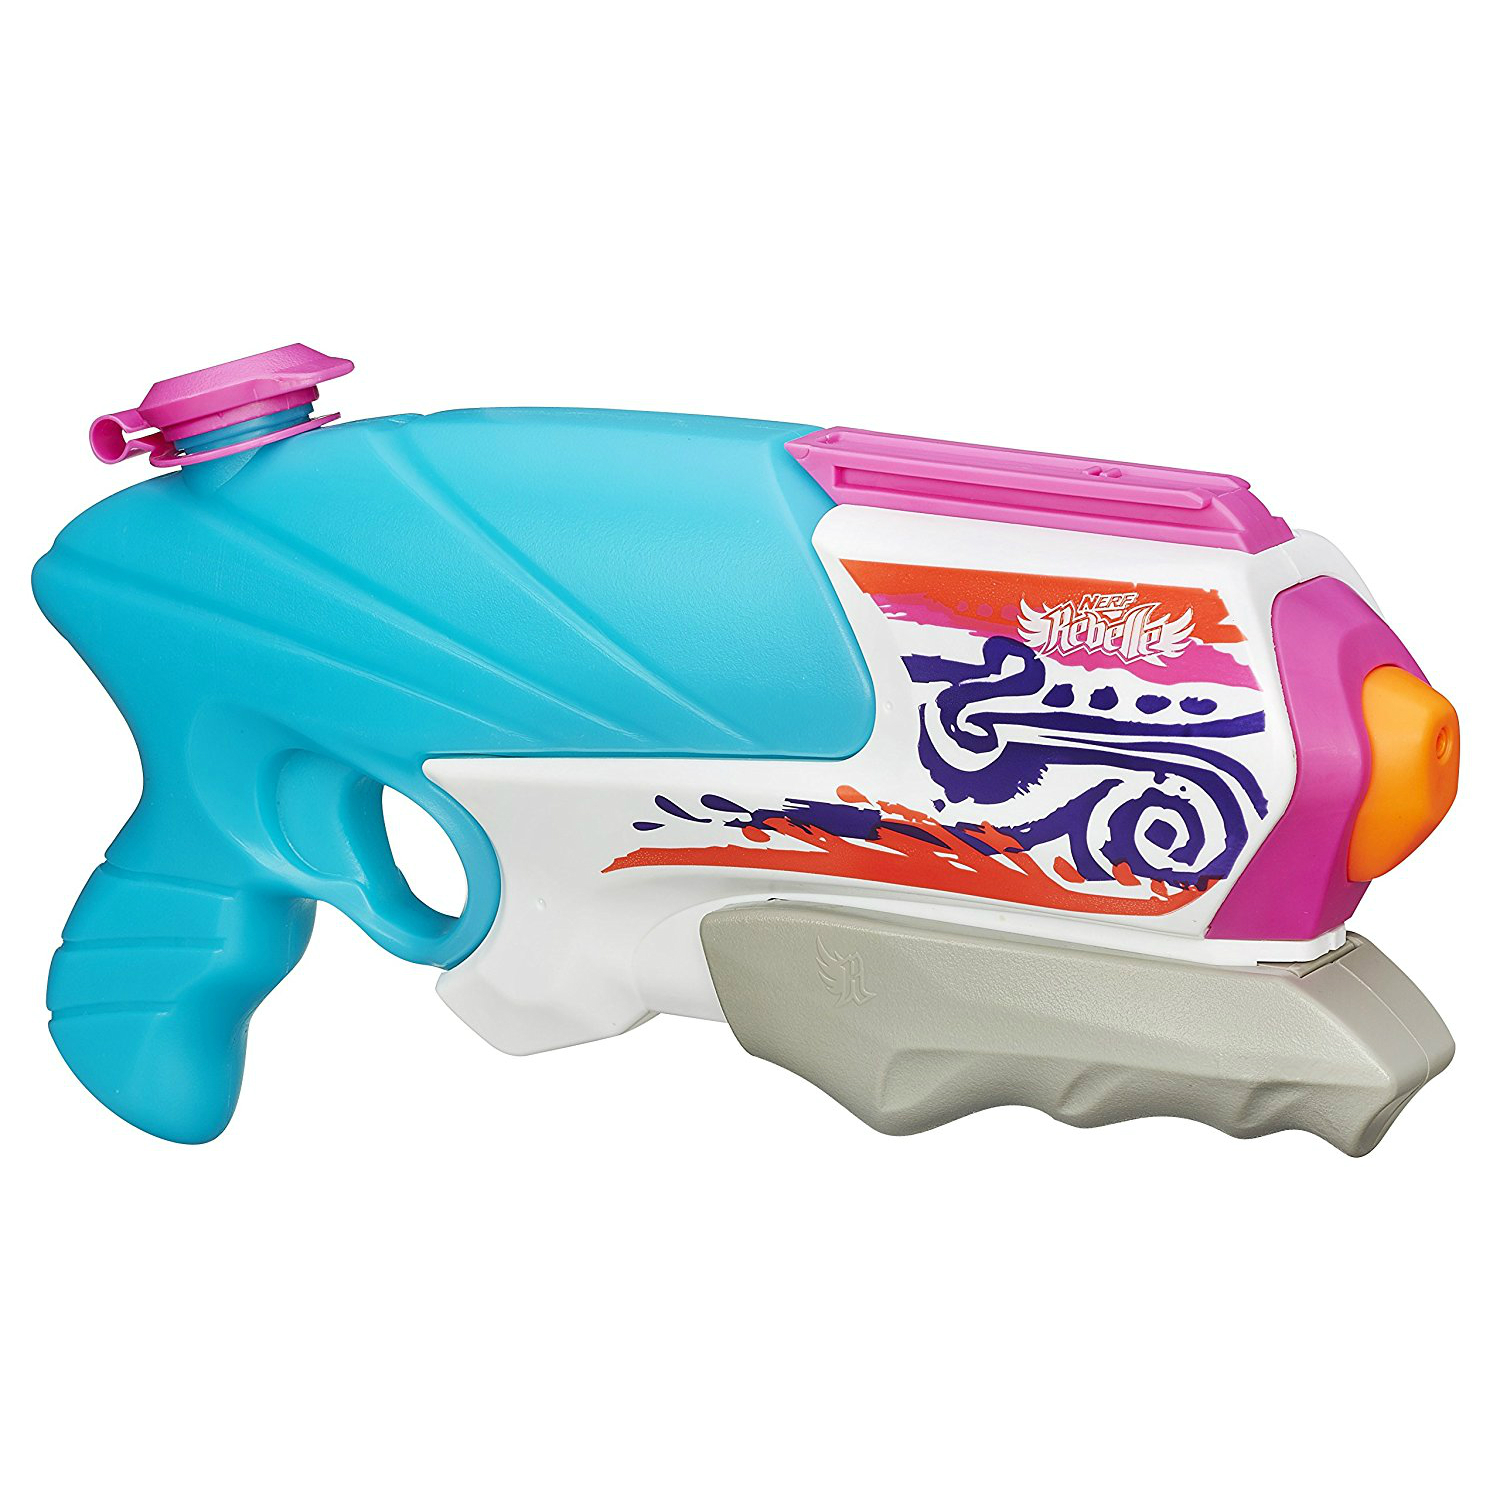 Nerf Rebelle Super Soaker Cascade Blaster Water Gun for ...